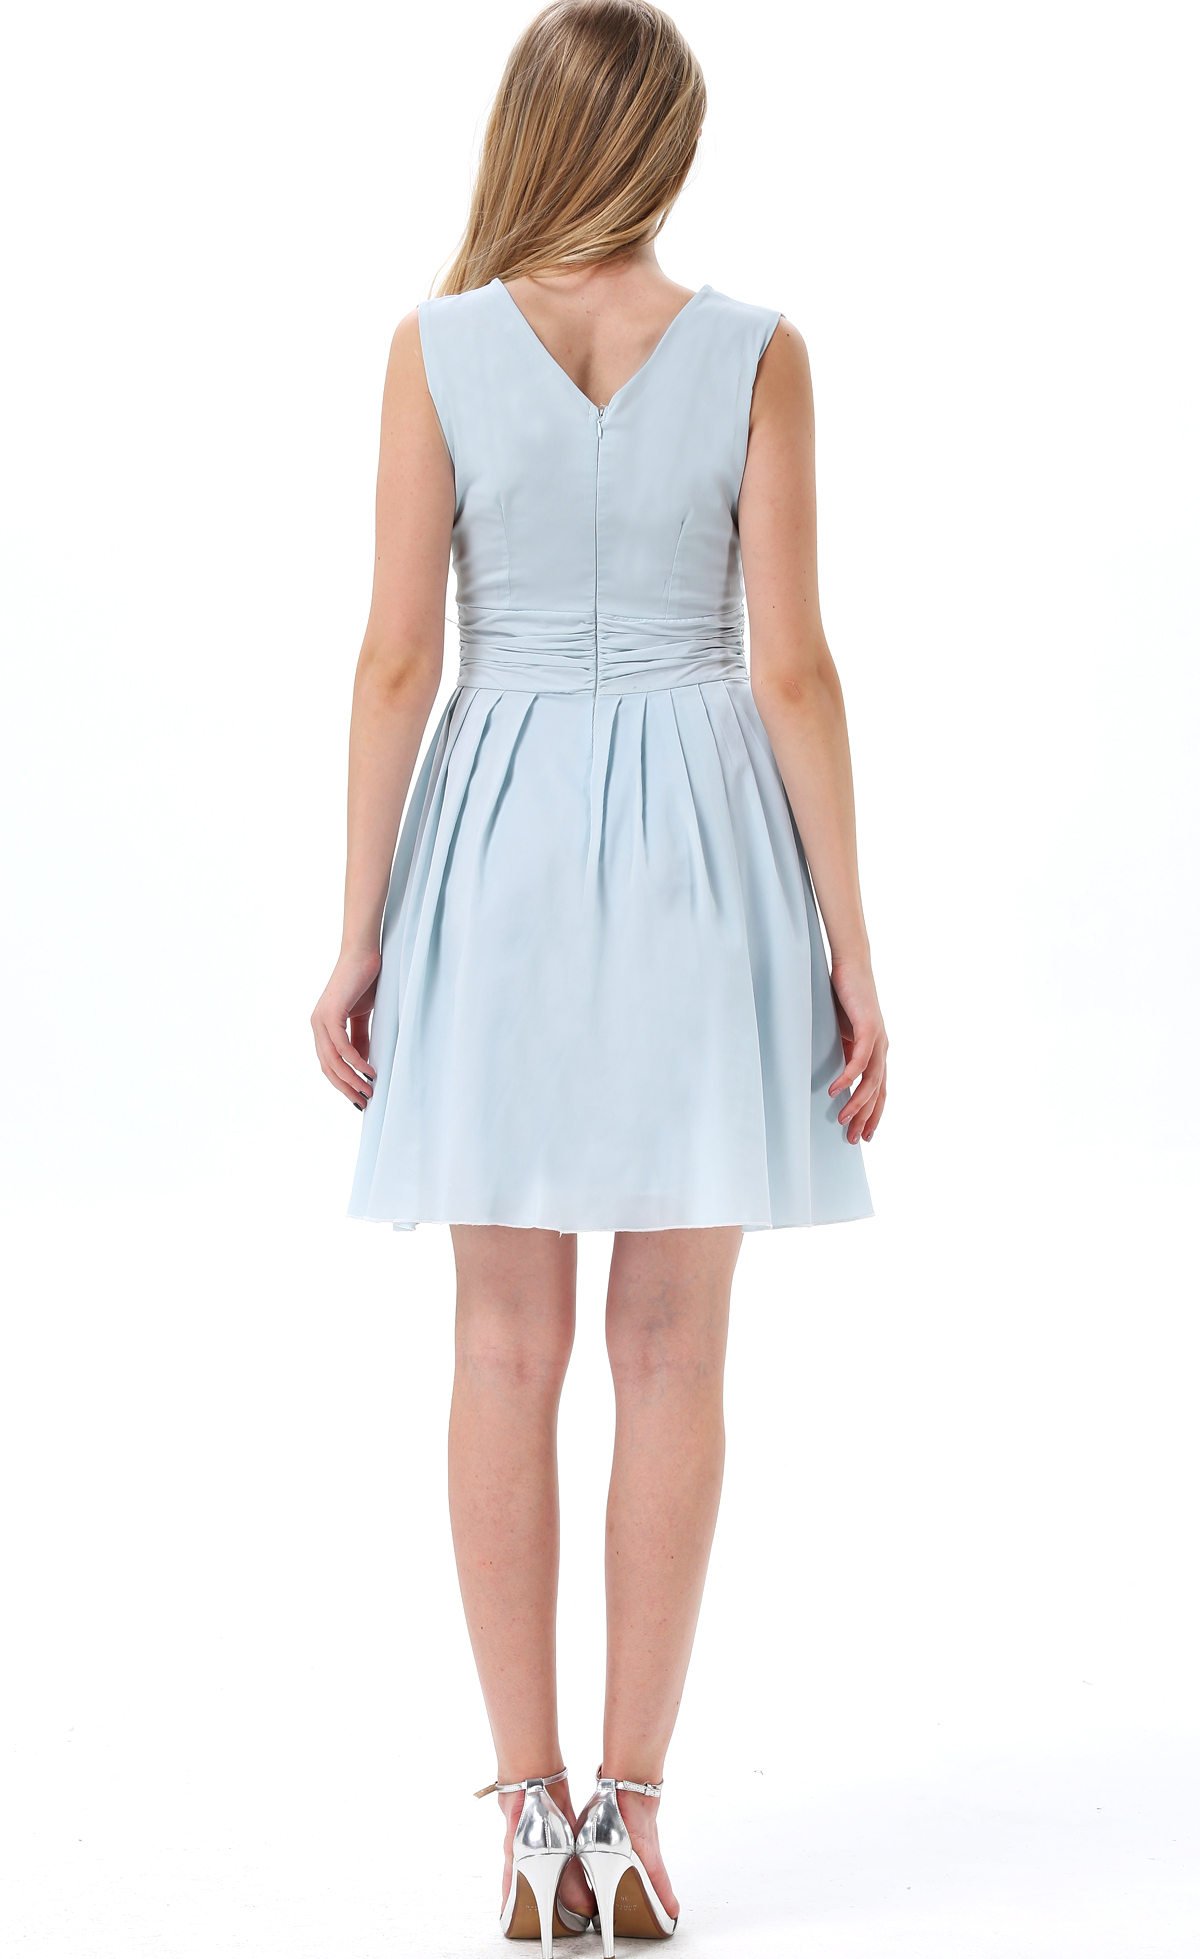 Blue Sleeveless Chiffon Ruffle Dress - Sheinside.com